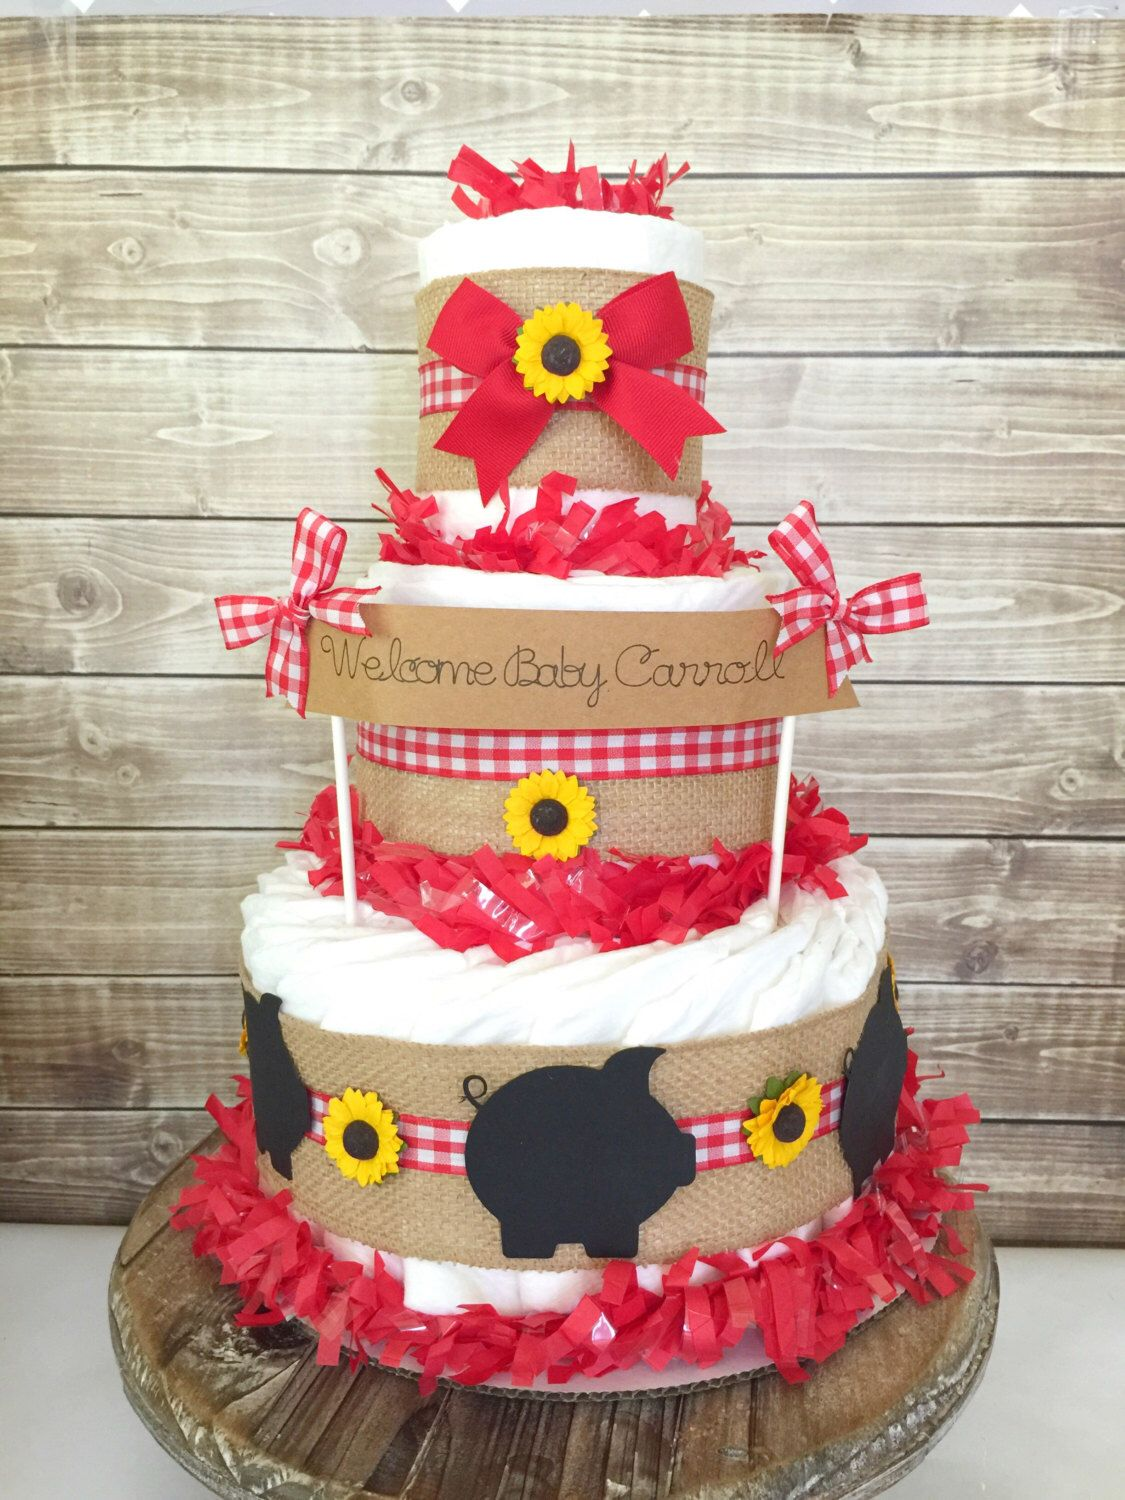 showers couples shower cake baby shower stuff baby q shower cake ideas